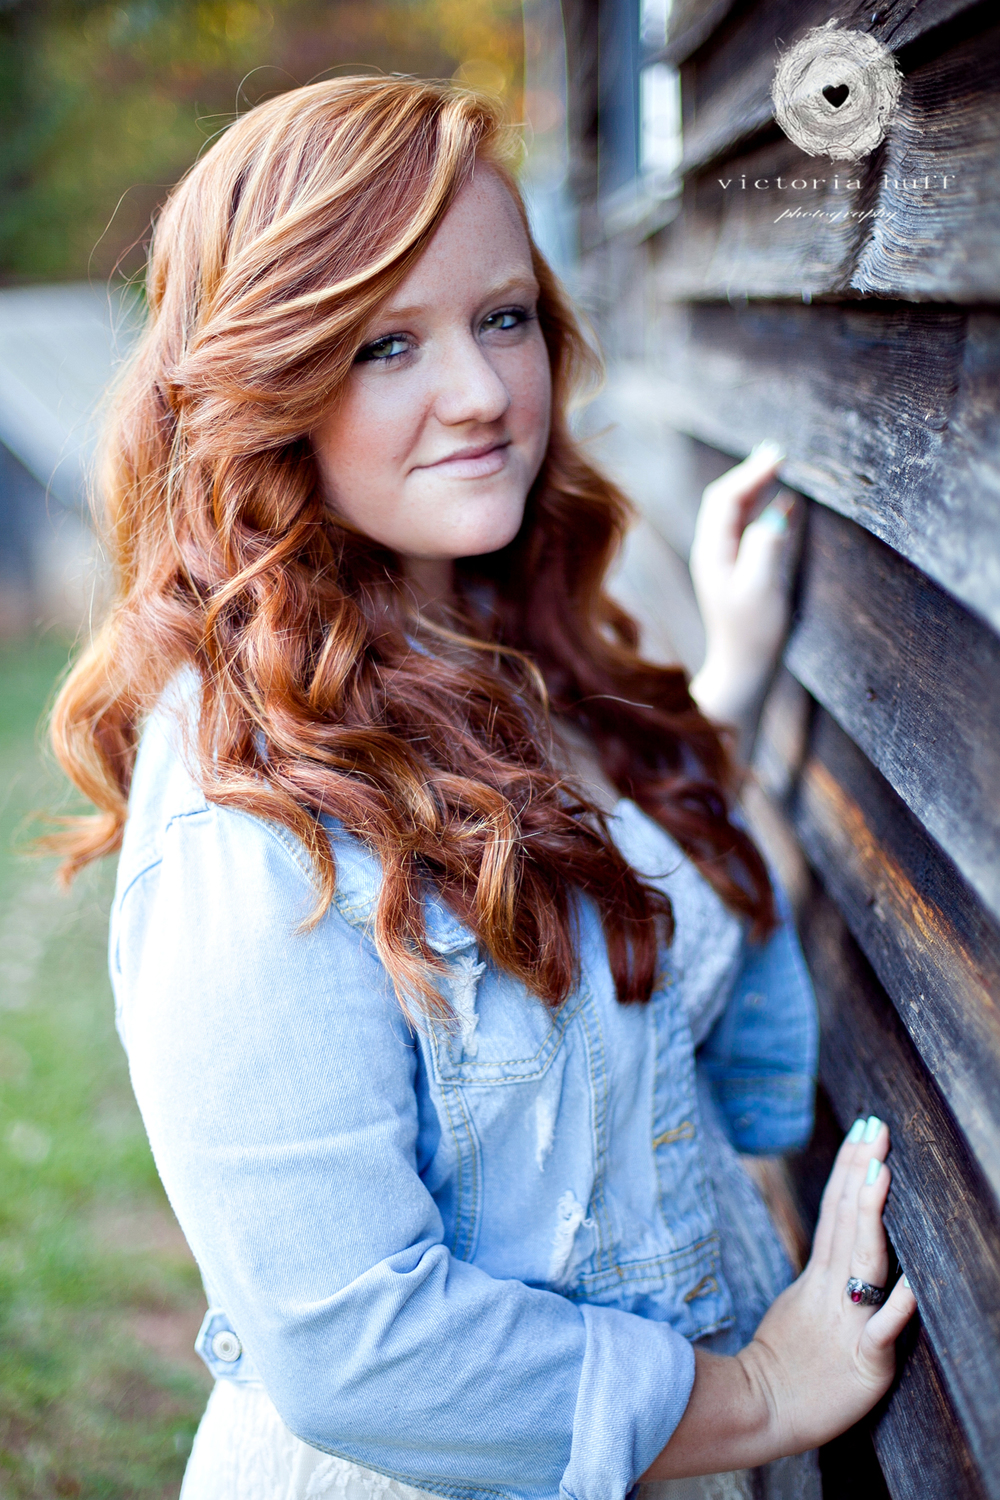 Courtney-Harkins-Senior-Portraits-Jefferson-Athens-Georgia-Red-Hair-Photography-4.jpg